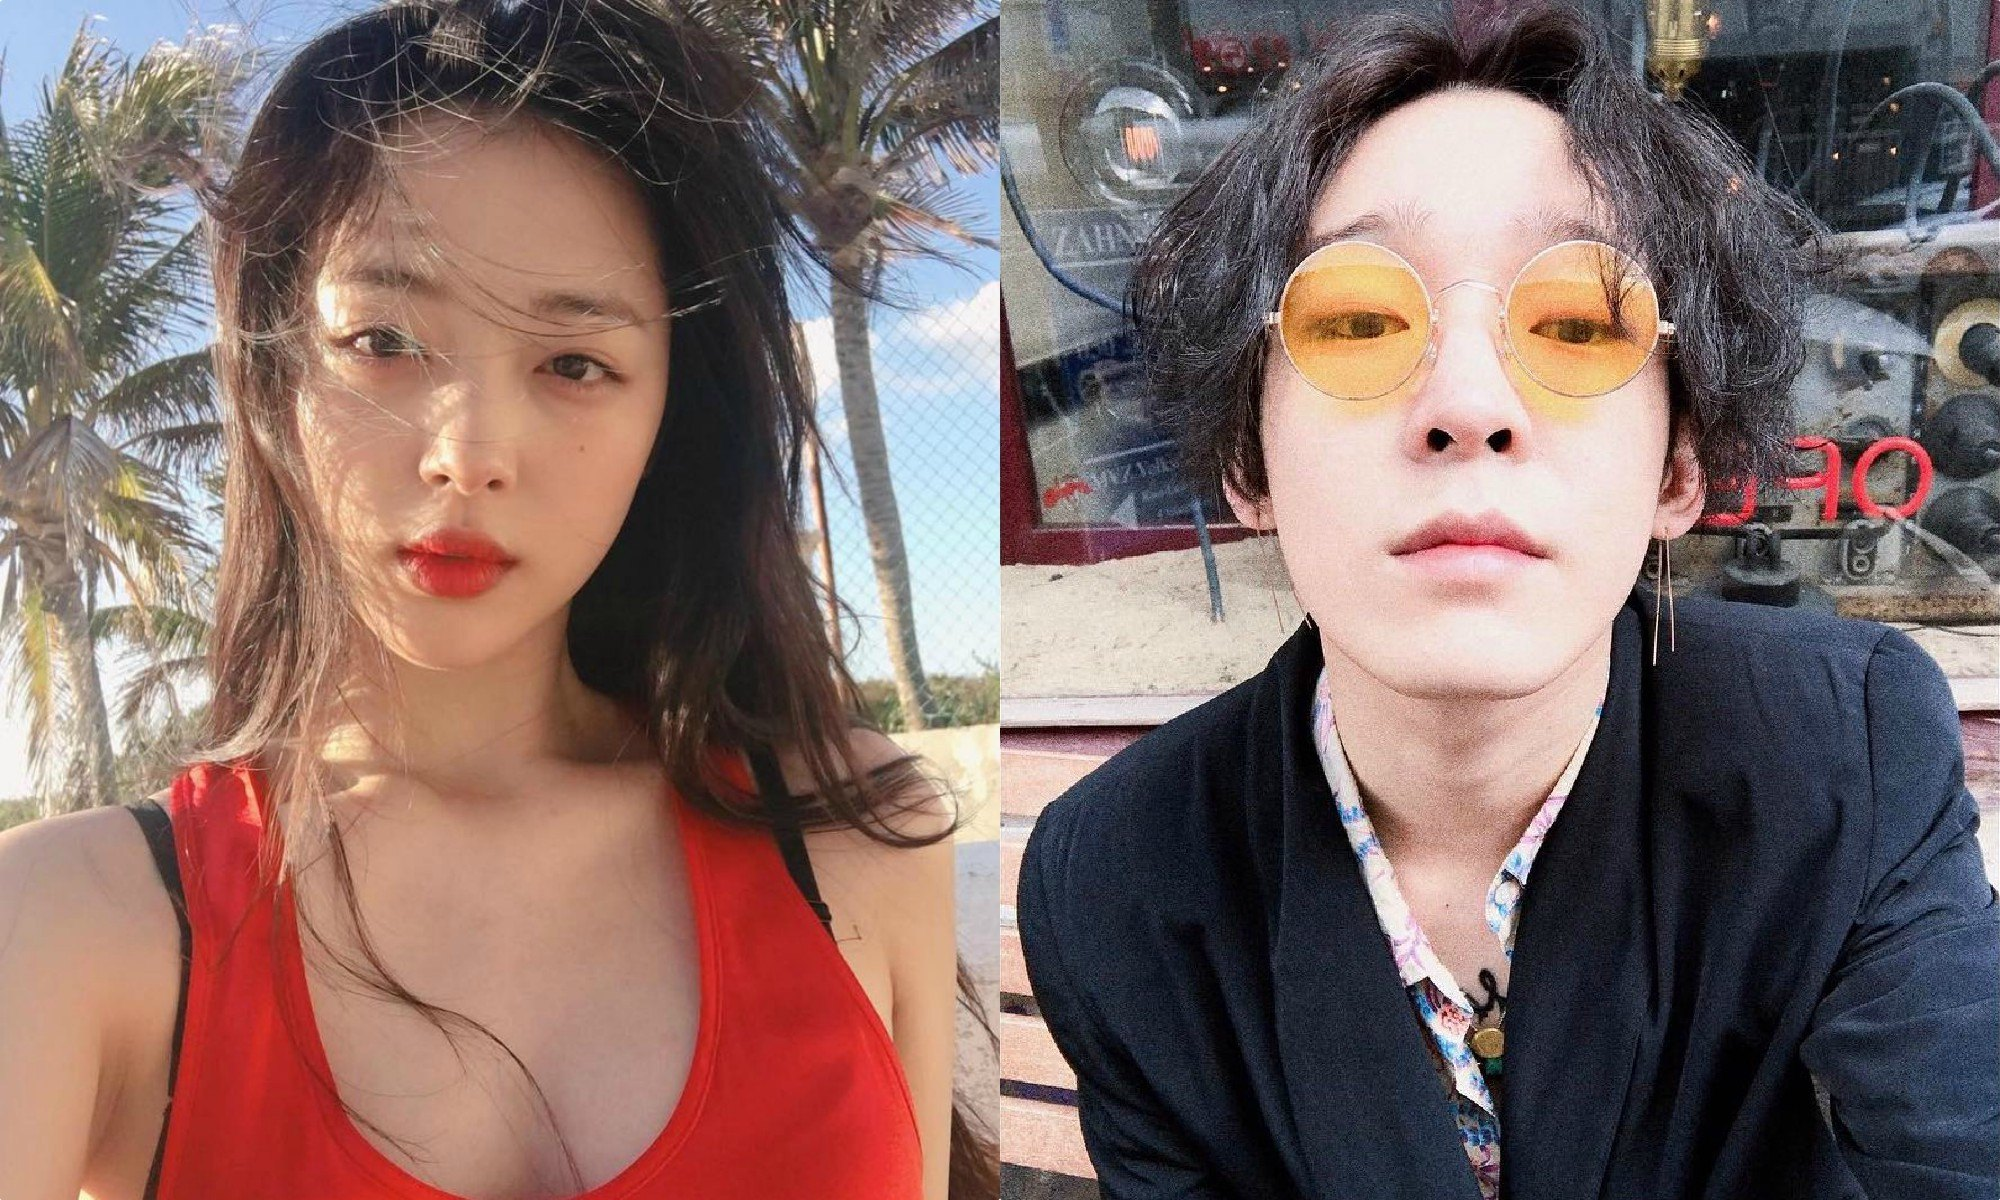 Intimate photo between Sulli and Nam Taehyun stirs curiosity among fans